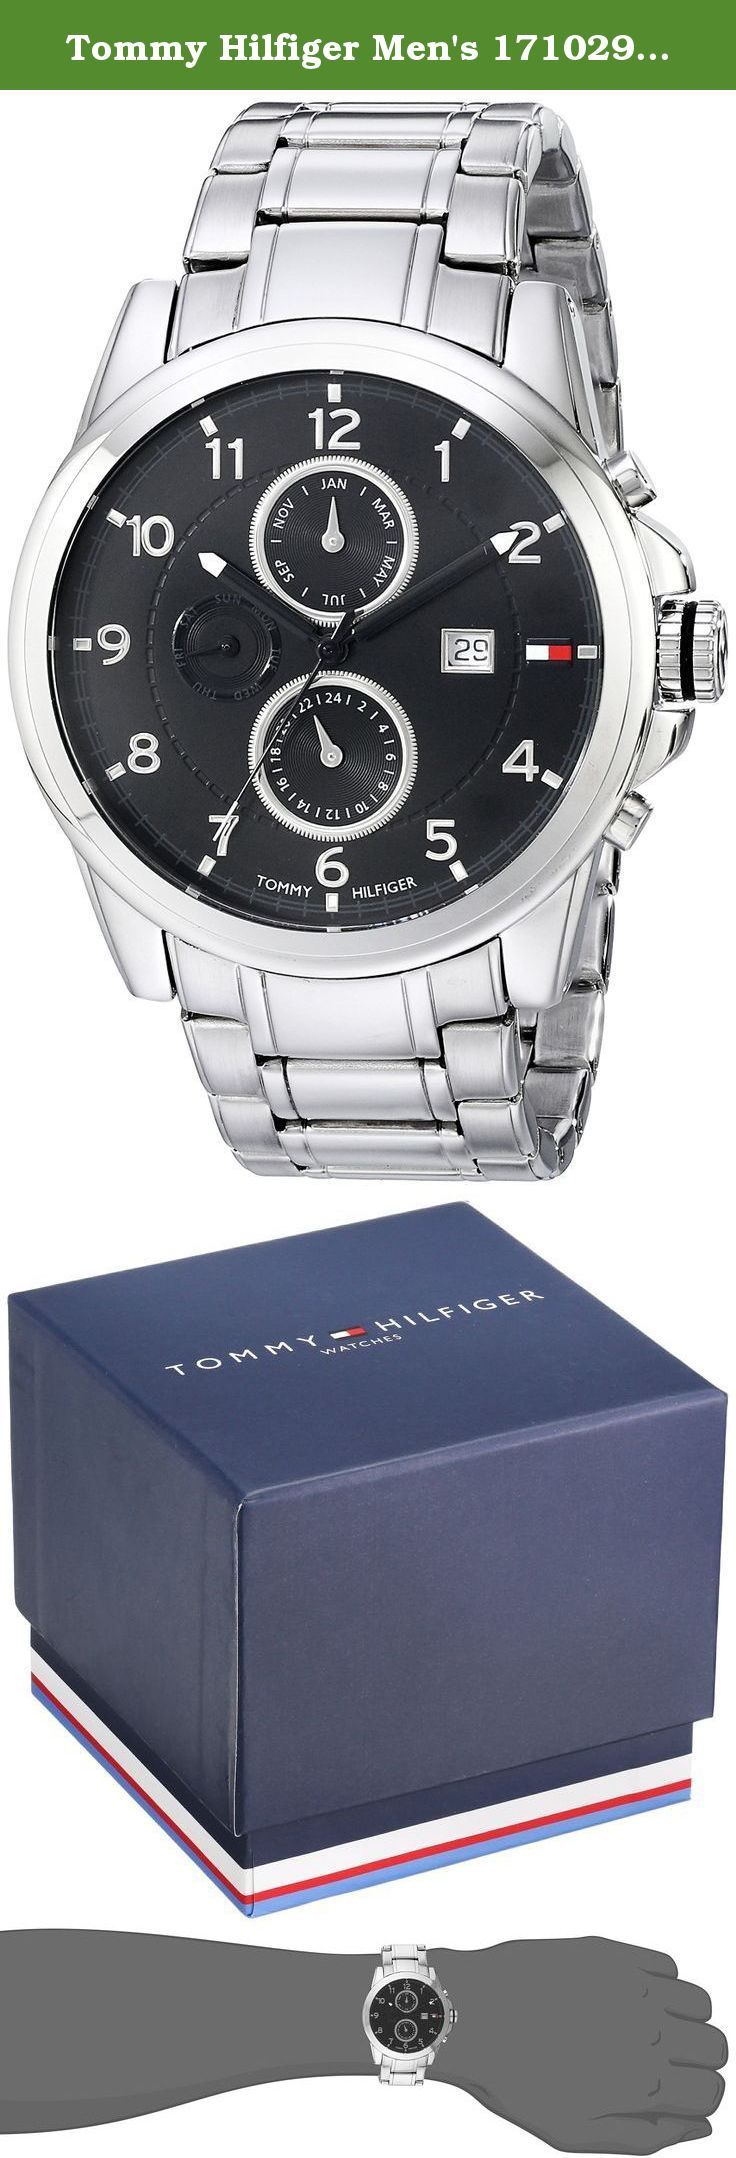 Tommy Hilfiger Men's 1710296 Classic Stainless Steel Black Subdial Watch. This Tommy Hilfiger watch focuses on classic sophistication. The Stainless steel case features a black multi function dial with day and date feature and silver Arabic numerals with second track around the perimeter. The dial is surrounded by a stainless steel bezel and a scratch resistant mineral crystal to complete the fuss free look. The Stainless steel bracelate features a classic link and a deployment closure....